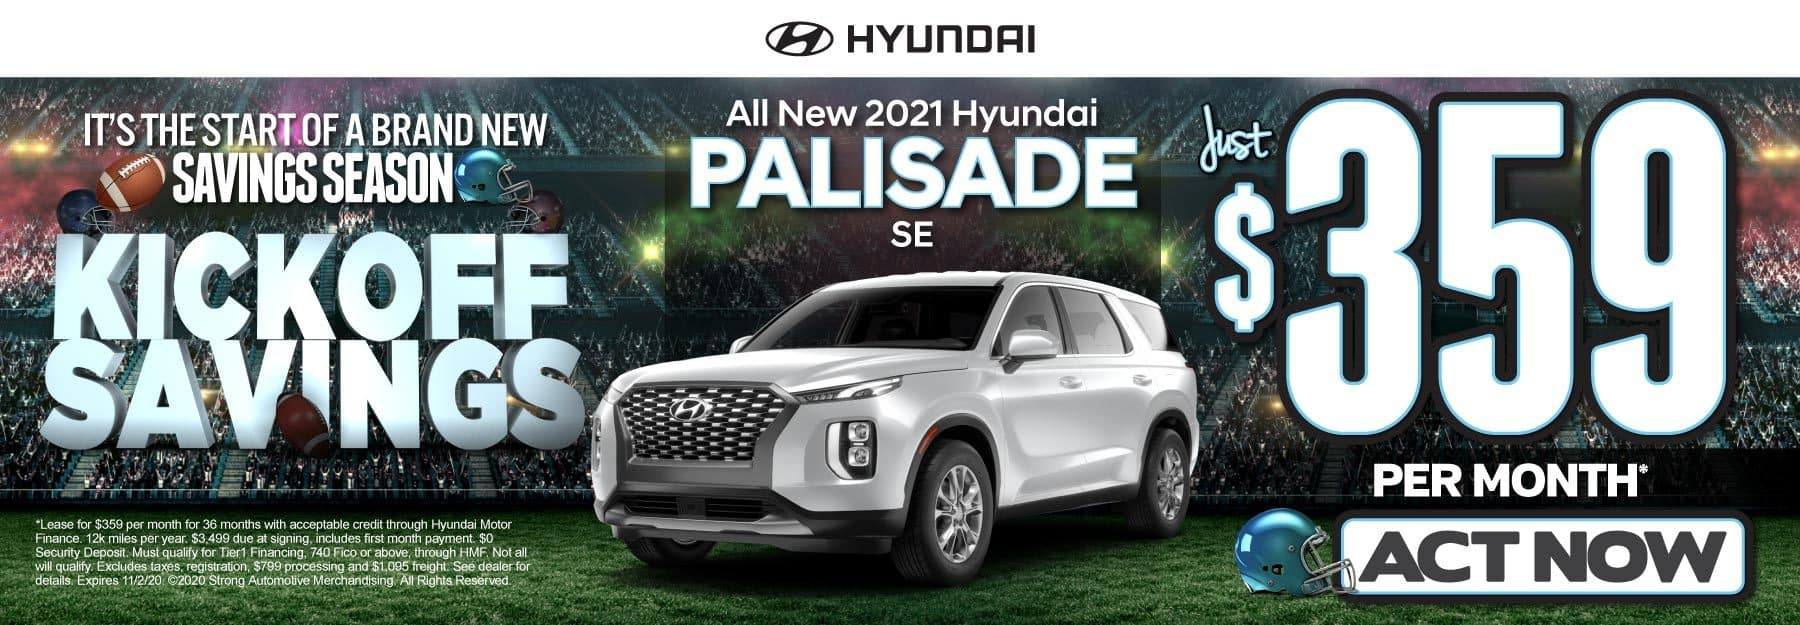 All New 2021 Hyundai Palisade | Just $359 per month | Click to View Inventory